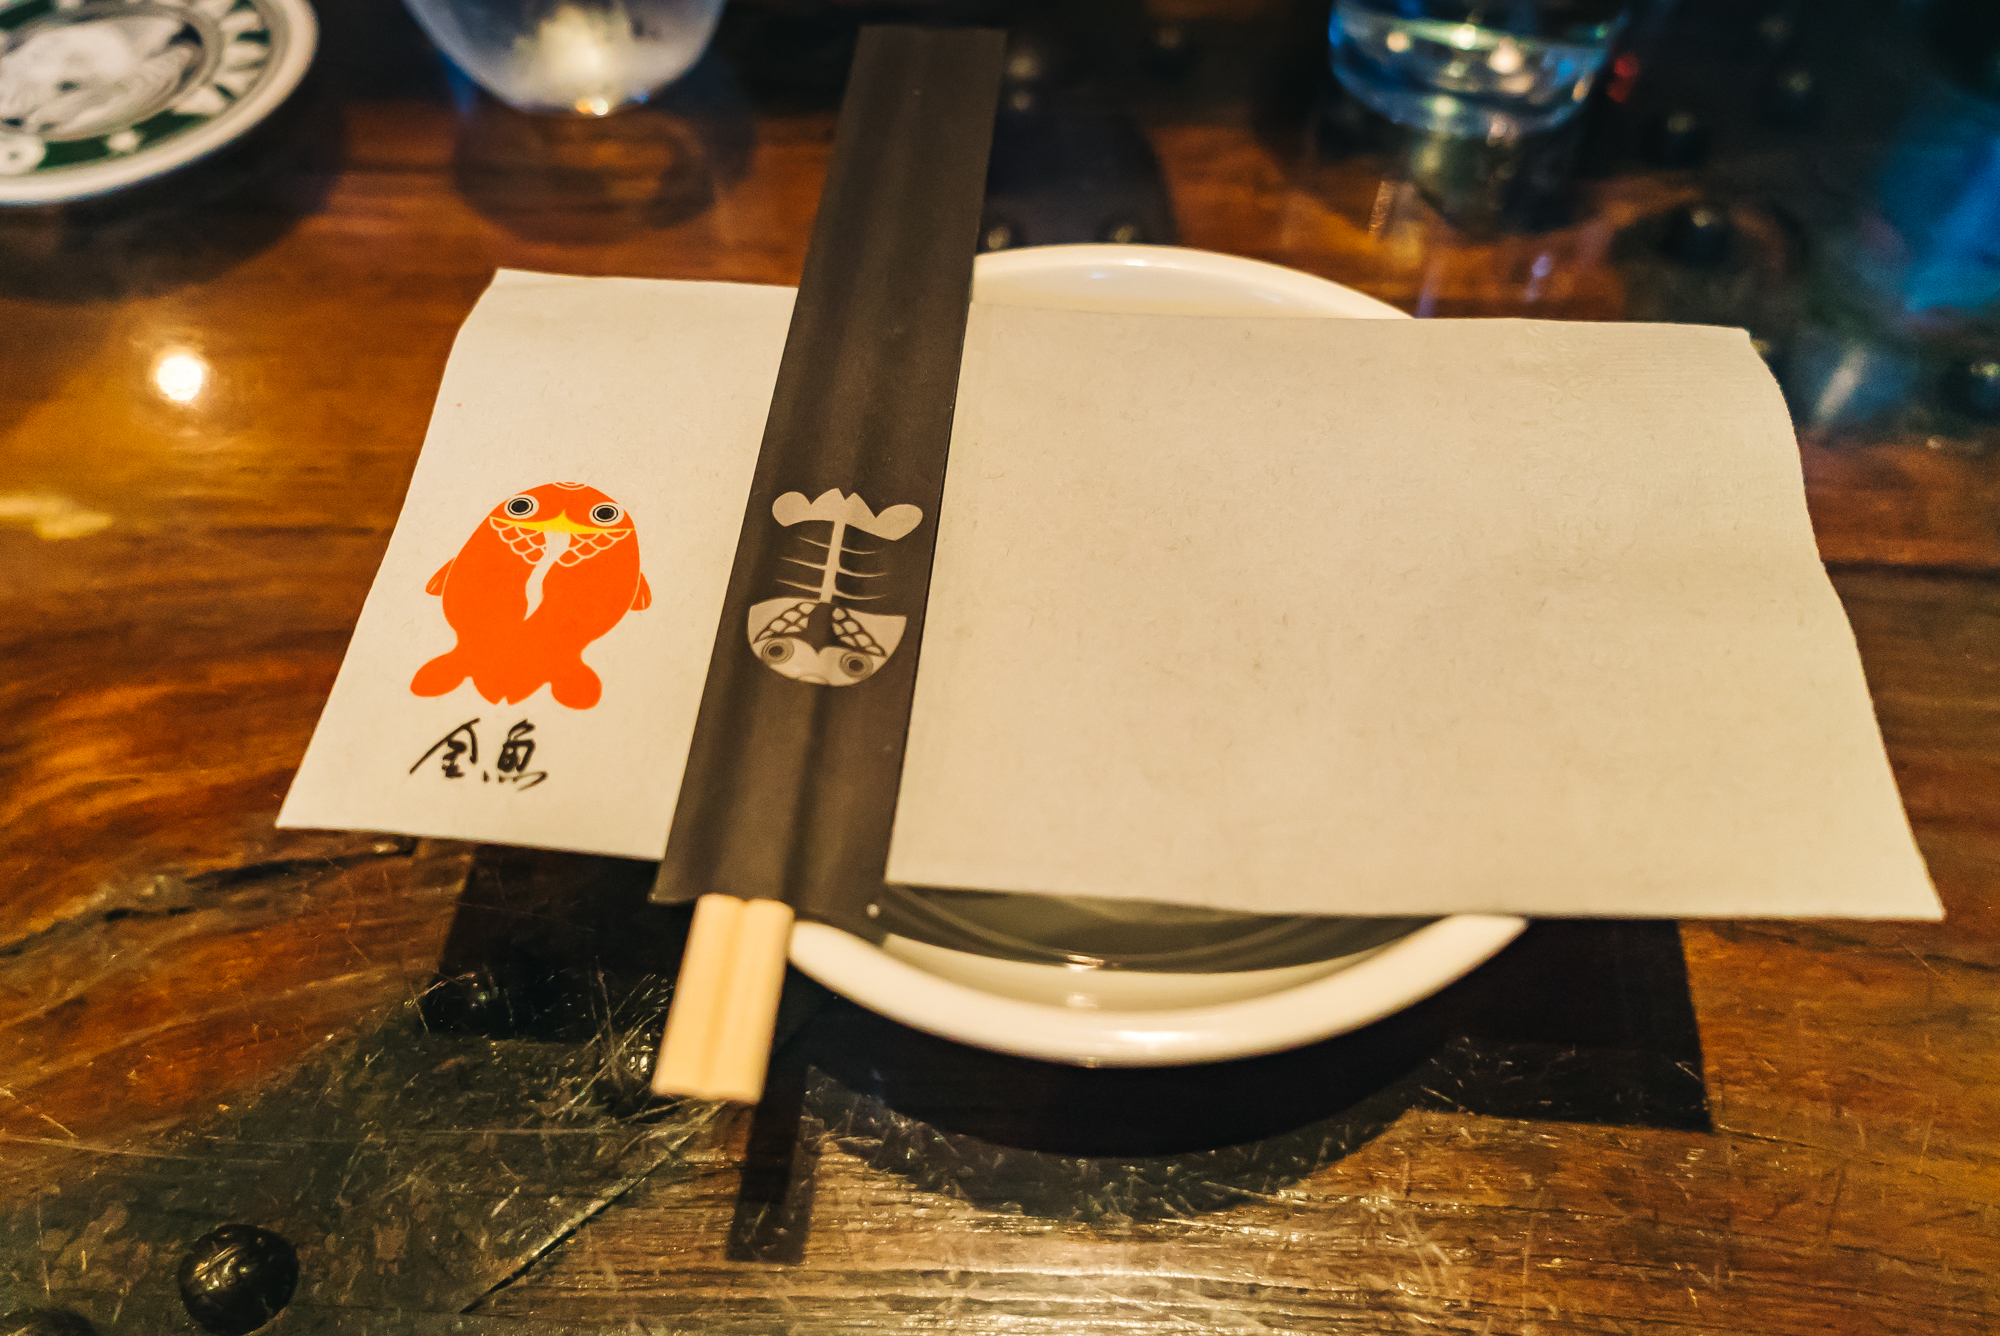 KINGYO IN JAPANESE MEANS GOLD FISH